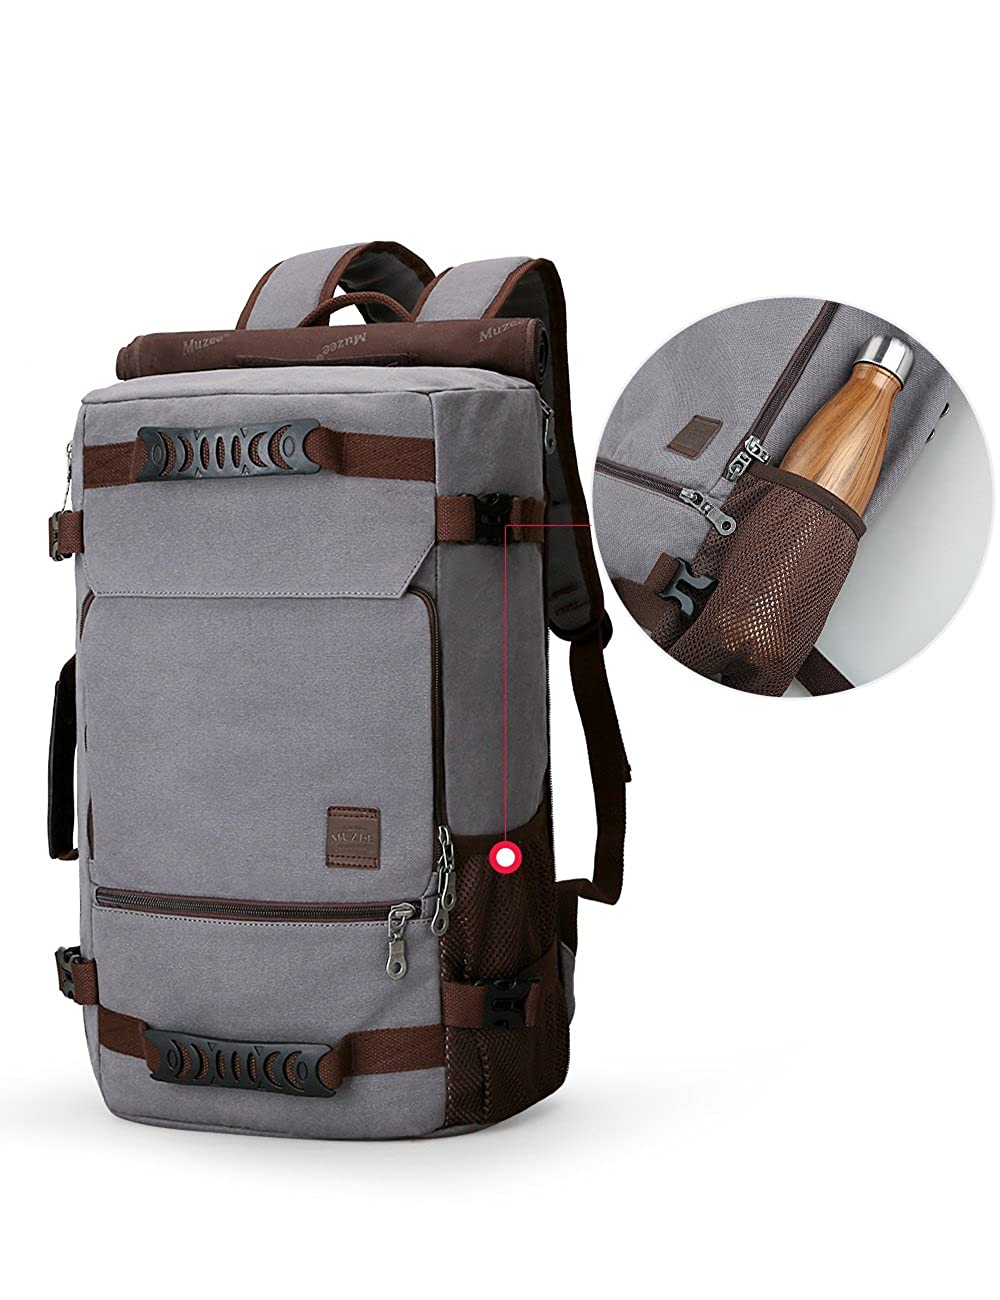 a1ac7fb5fb76 Muzee New Backpack Men Canvas Backpack Large Capacity Bag for Travel  Backpack 15.6inch Laptop Backpack  Amazon.co.uk  Clothing